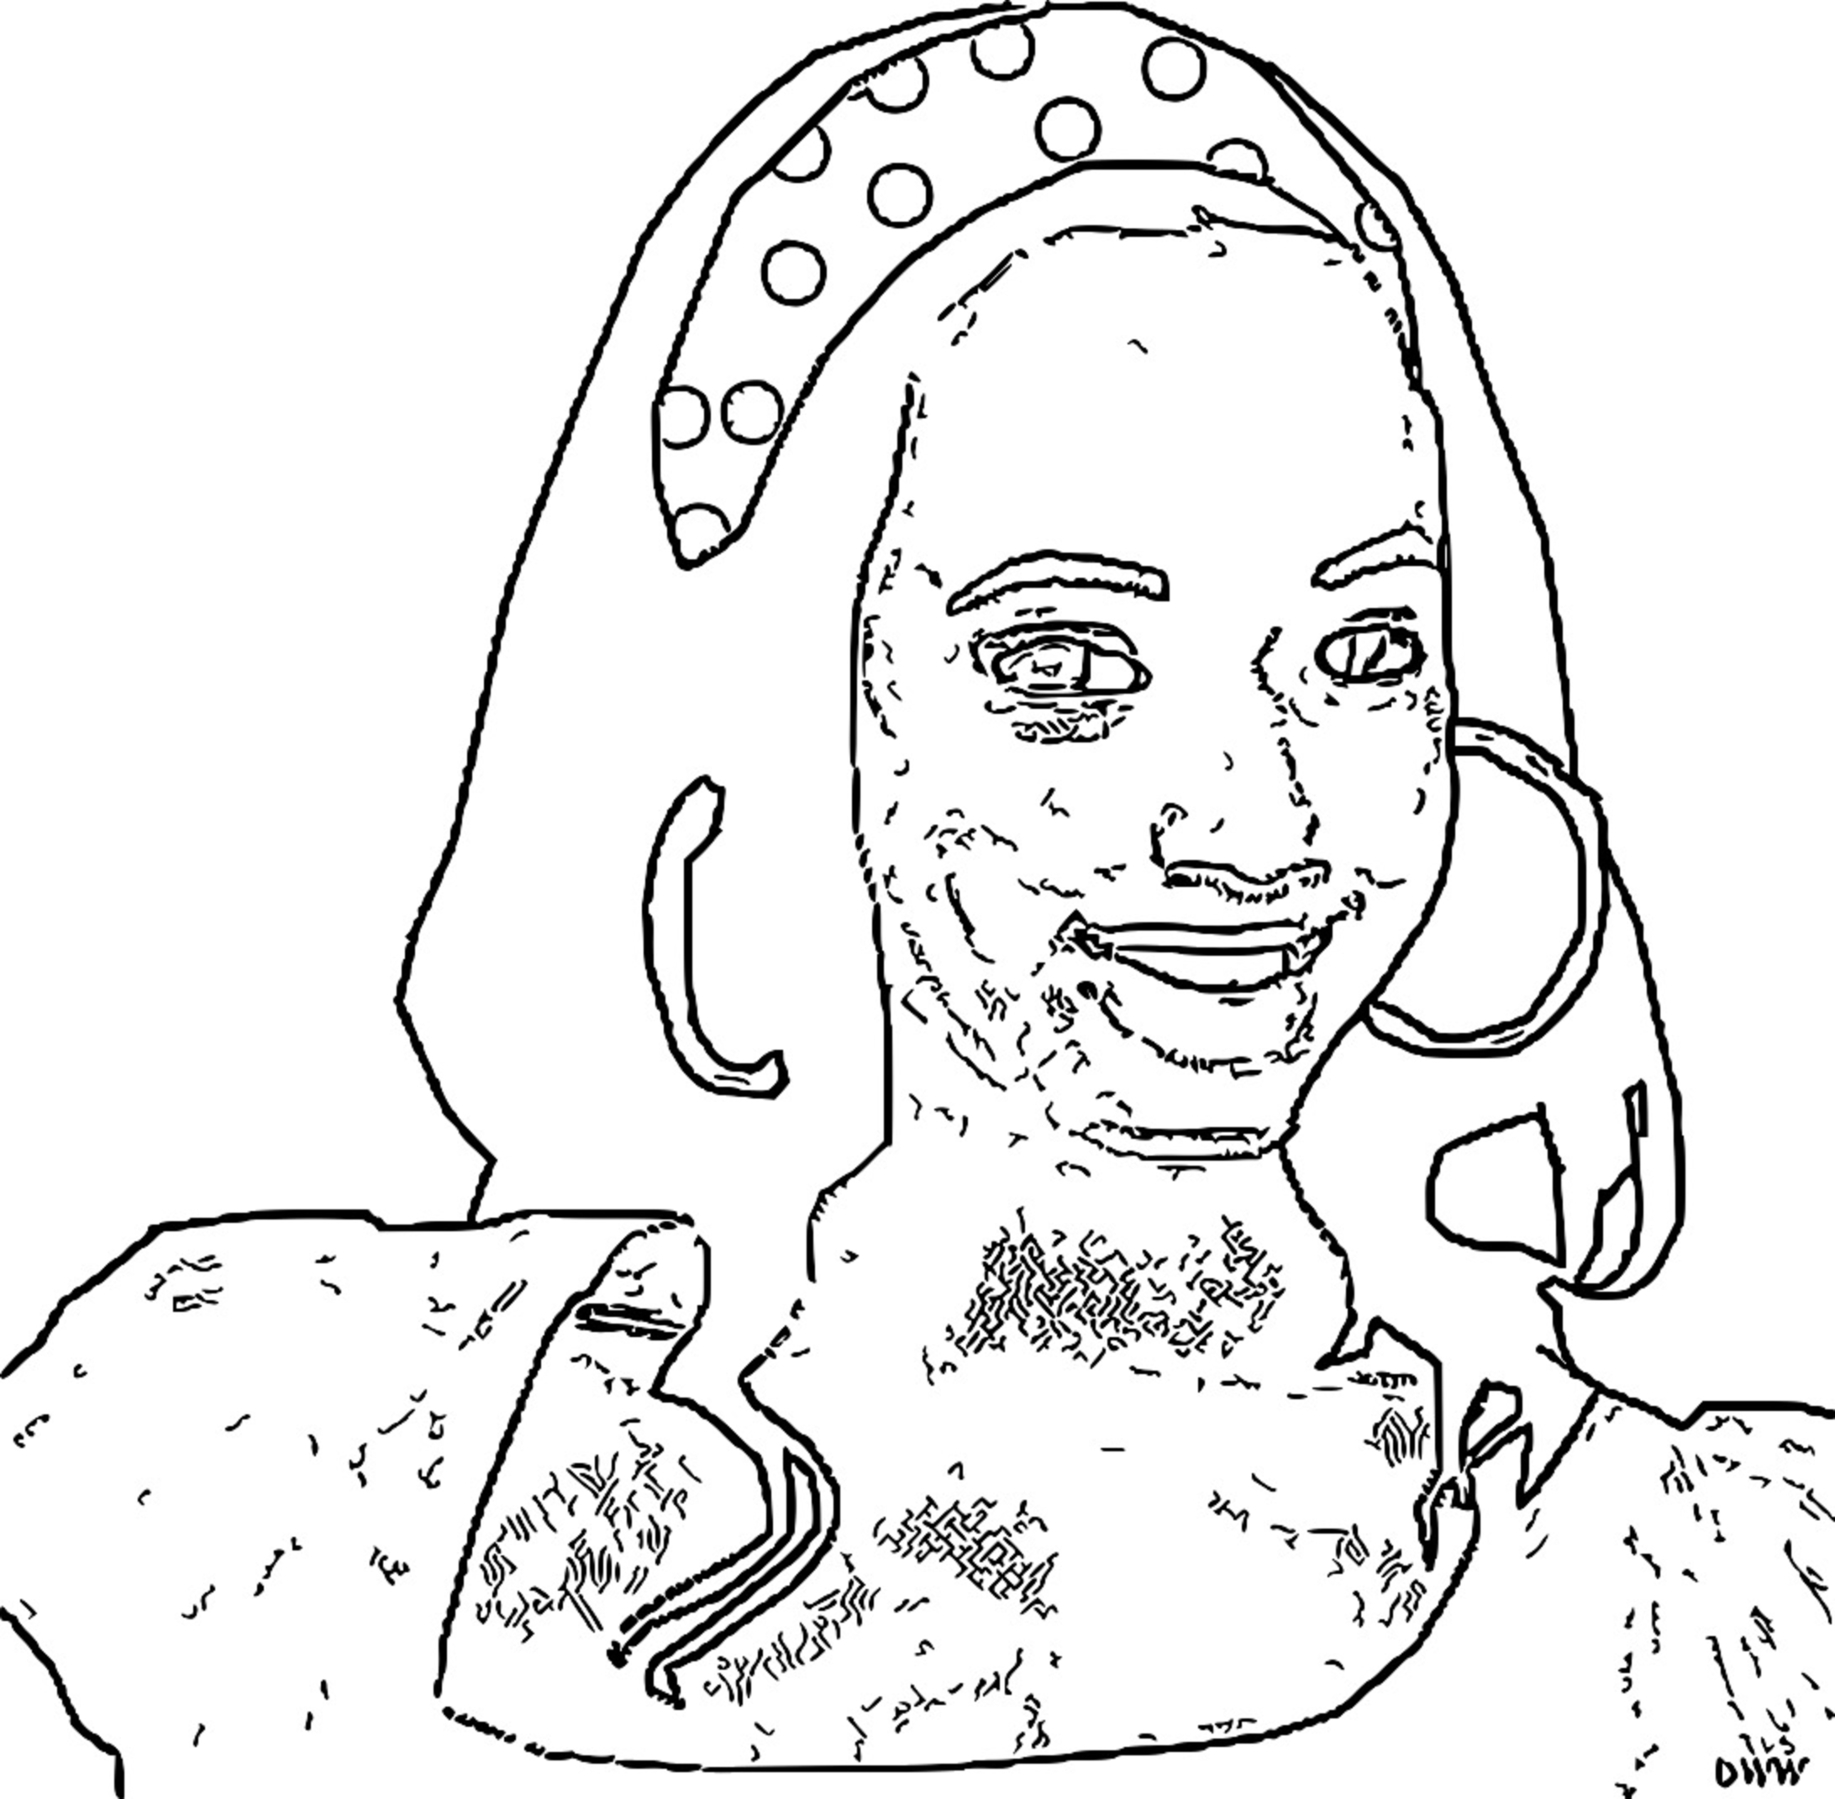 Taylor McKessie Coloring Pages_Cartoonized